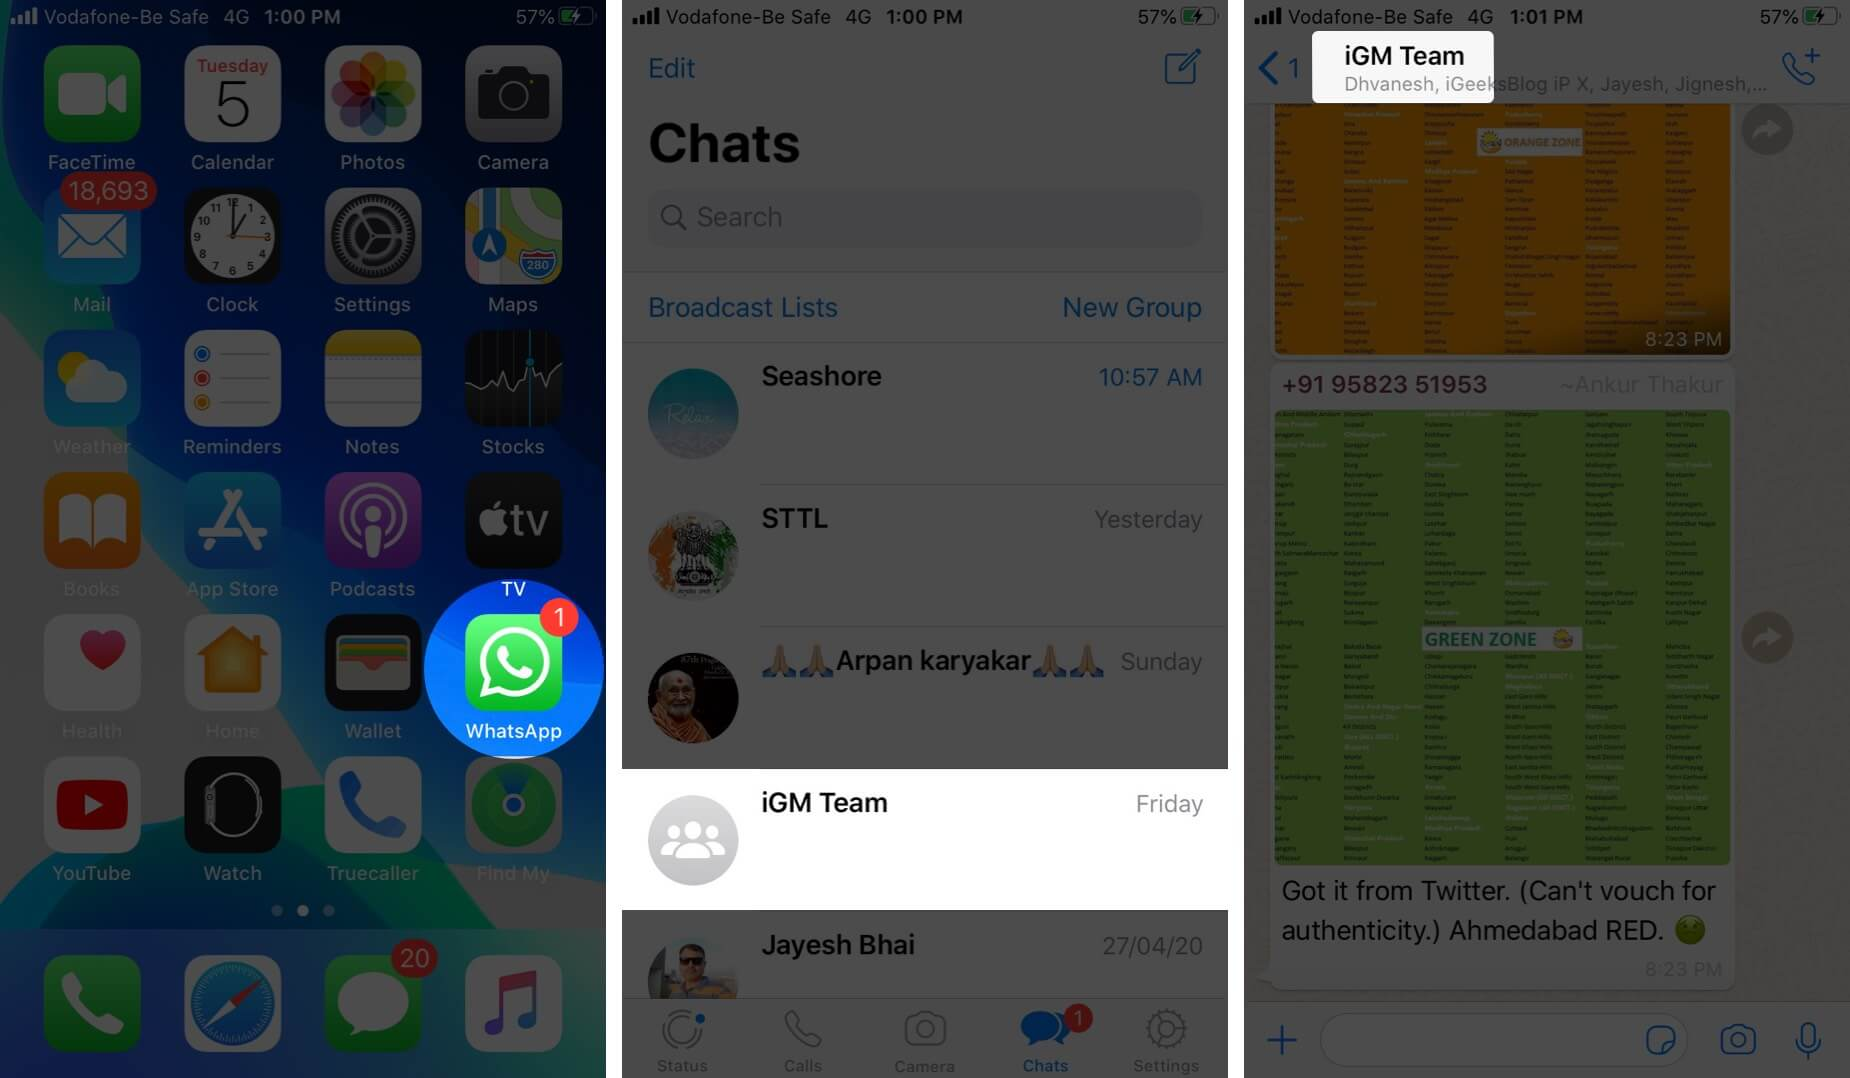 Open WhatsApp Tap on Group and Tap on Group Name